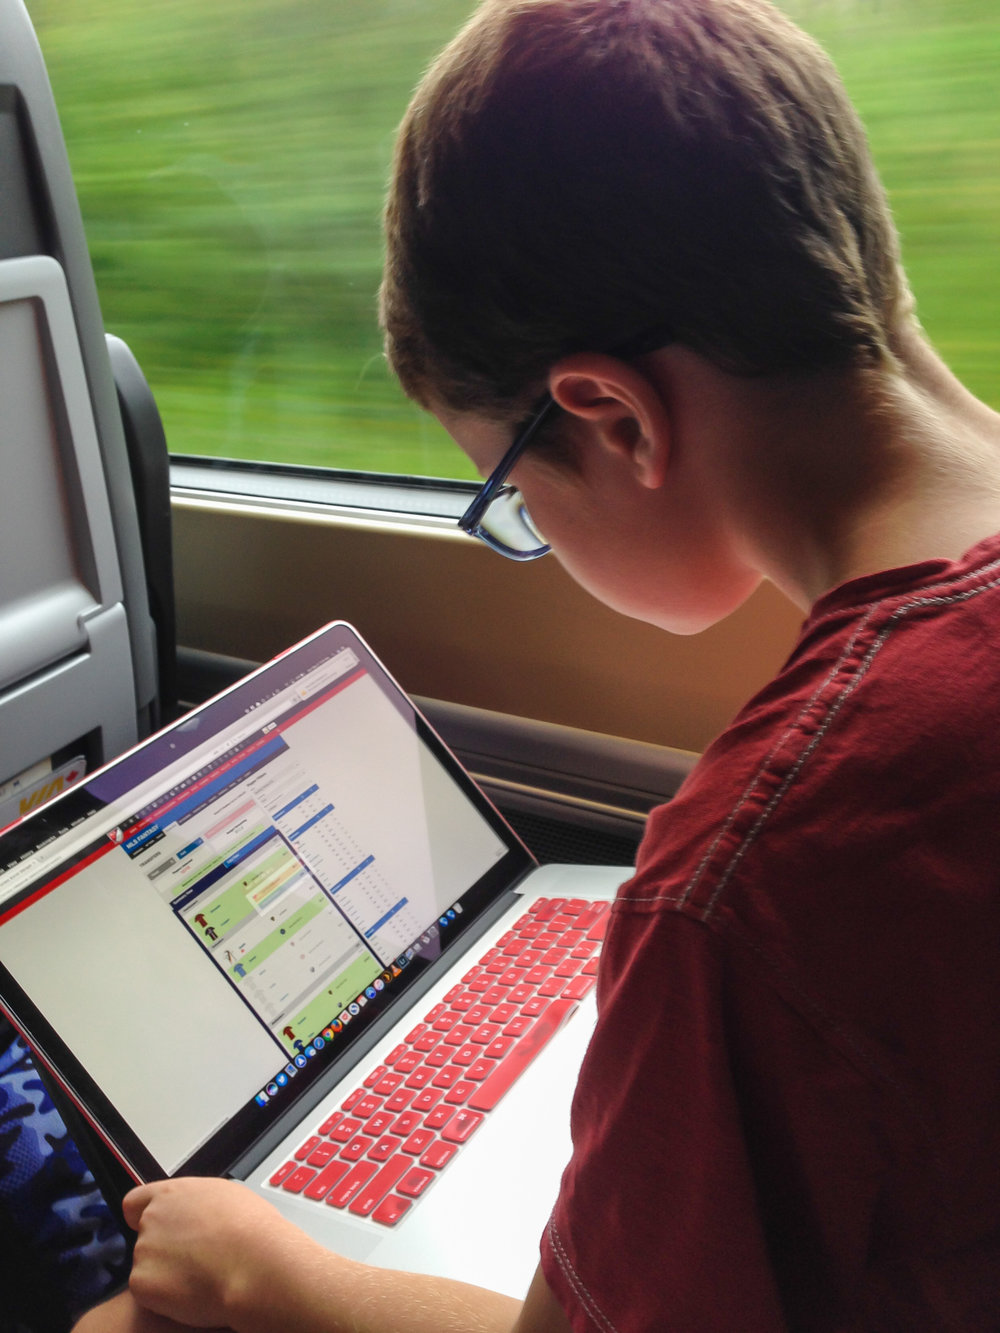 MLSFANTASY4KIDZ homework, on the train to see Toronto FC in 2017. That season turned out just fine.  ★